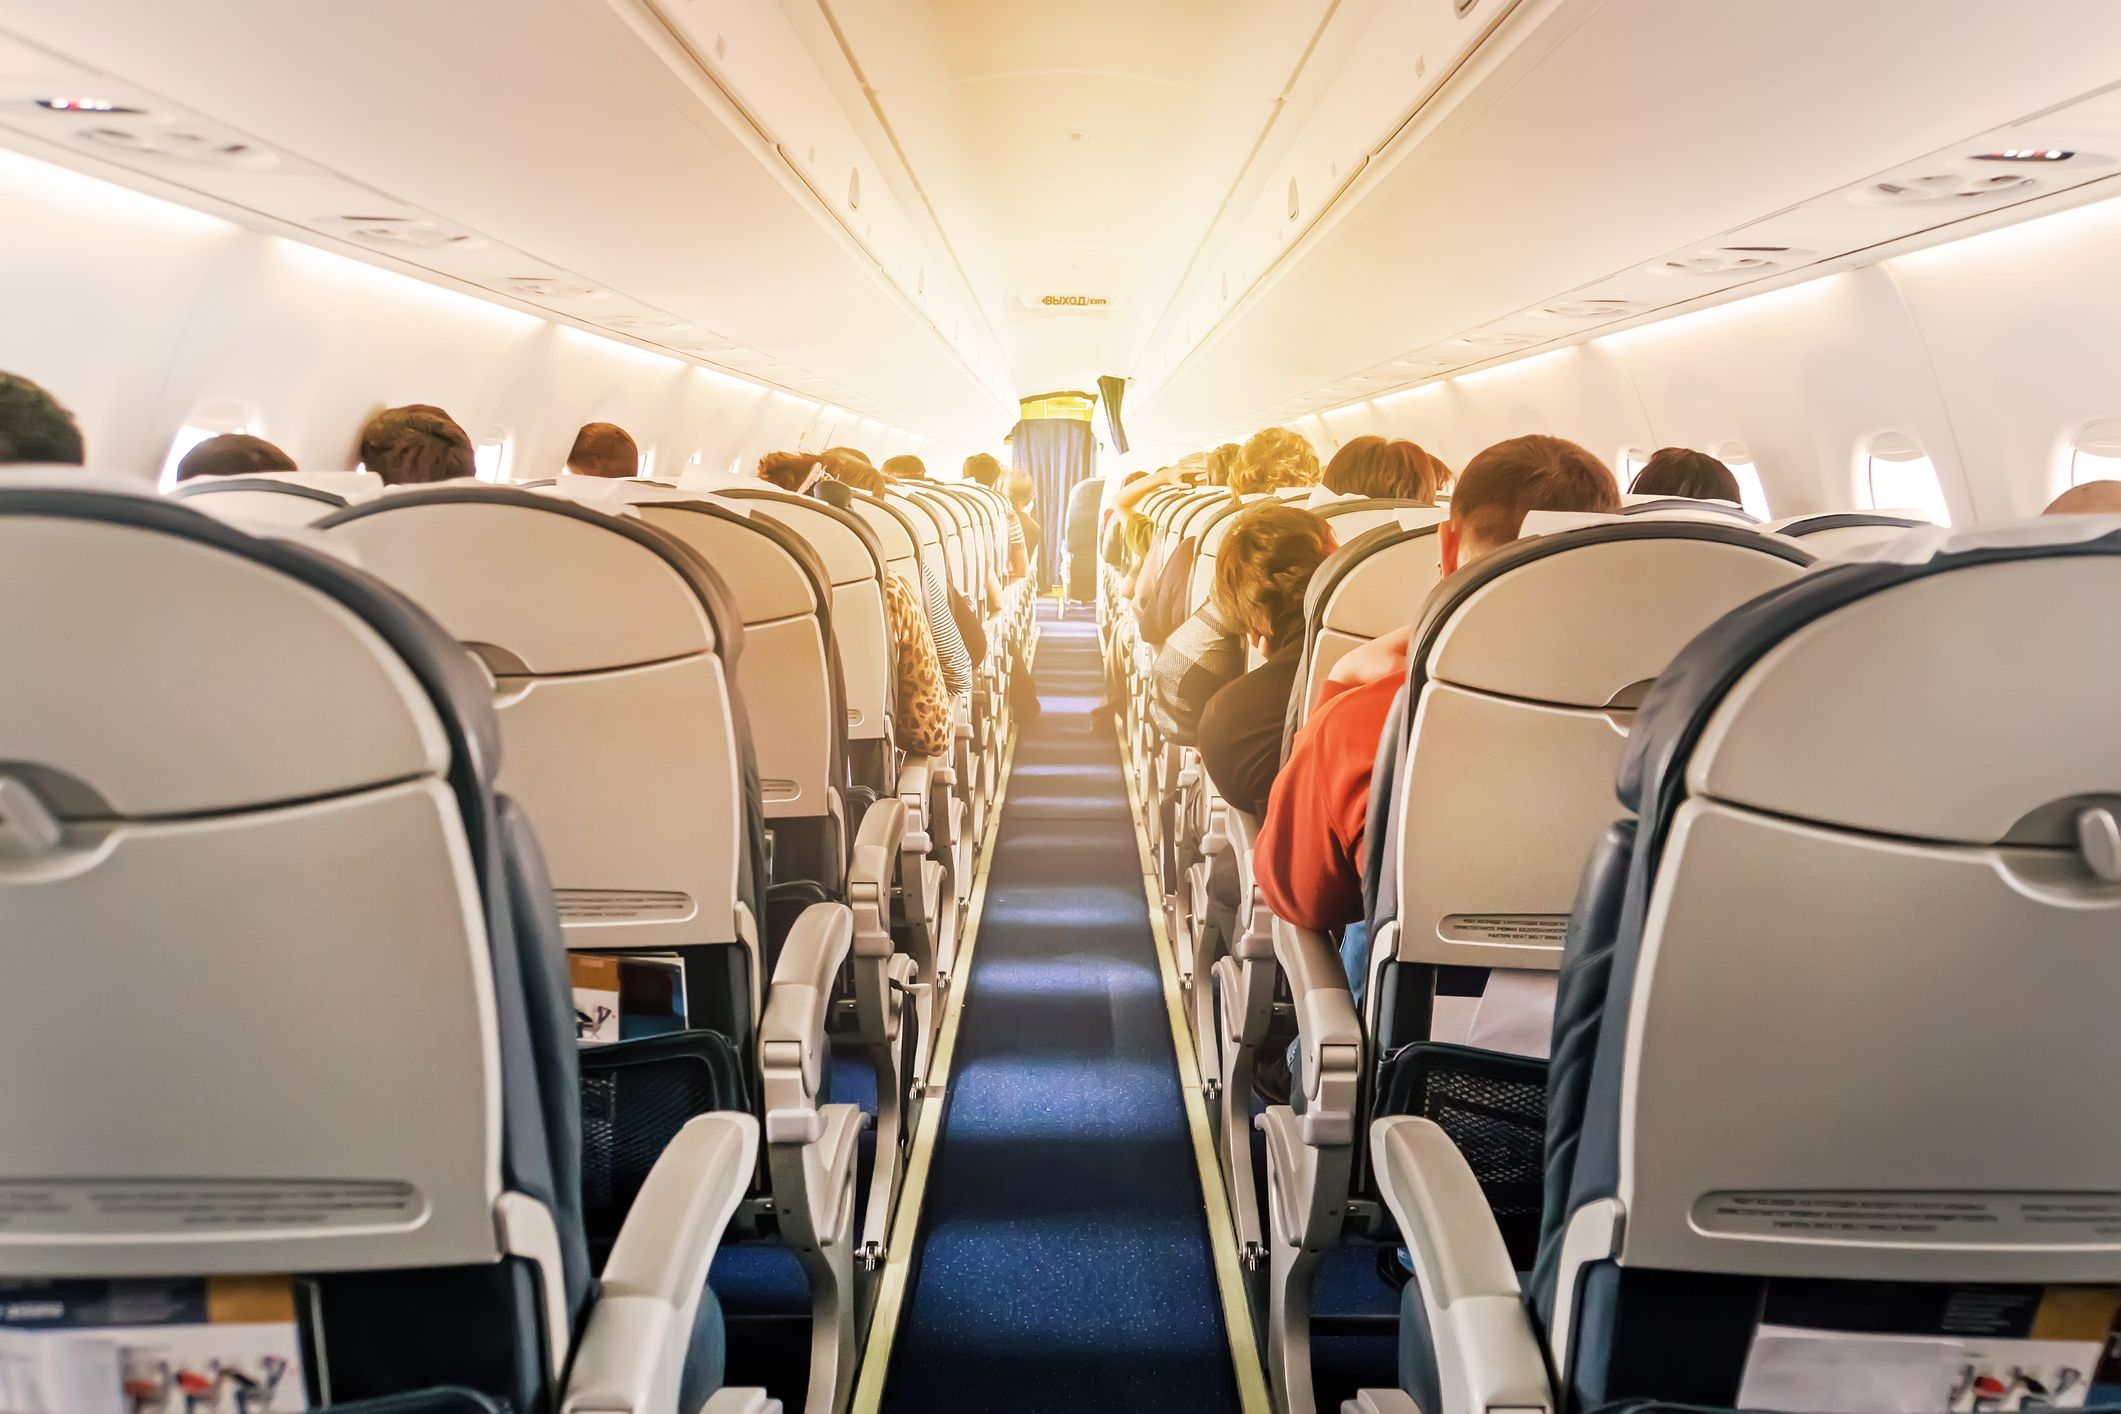 11 Items You Need on Every Flight